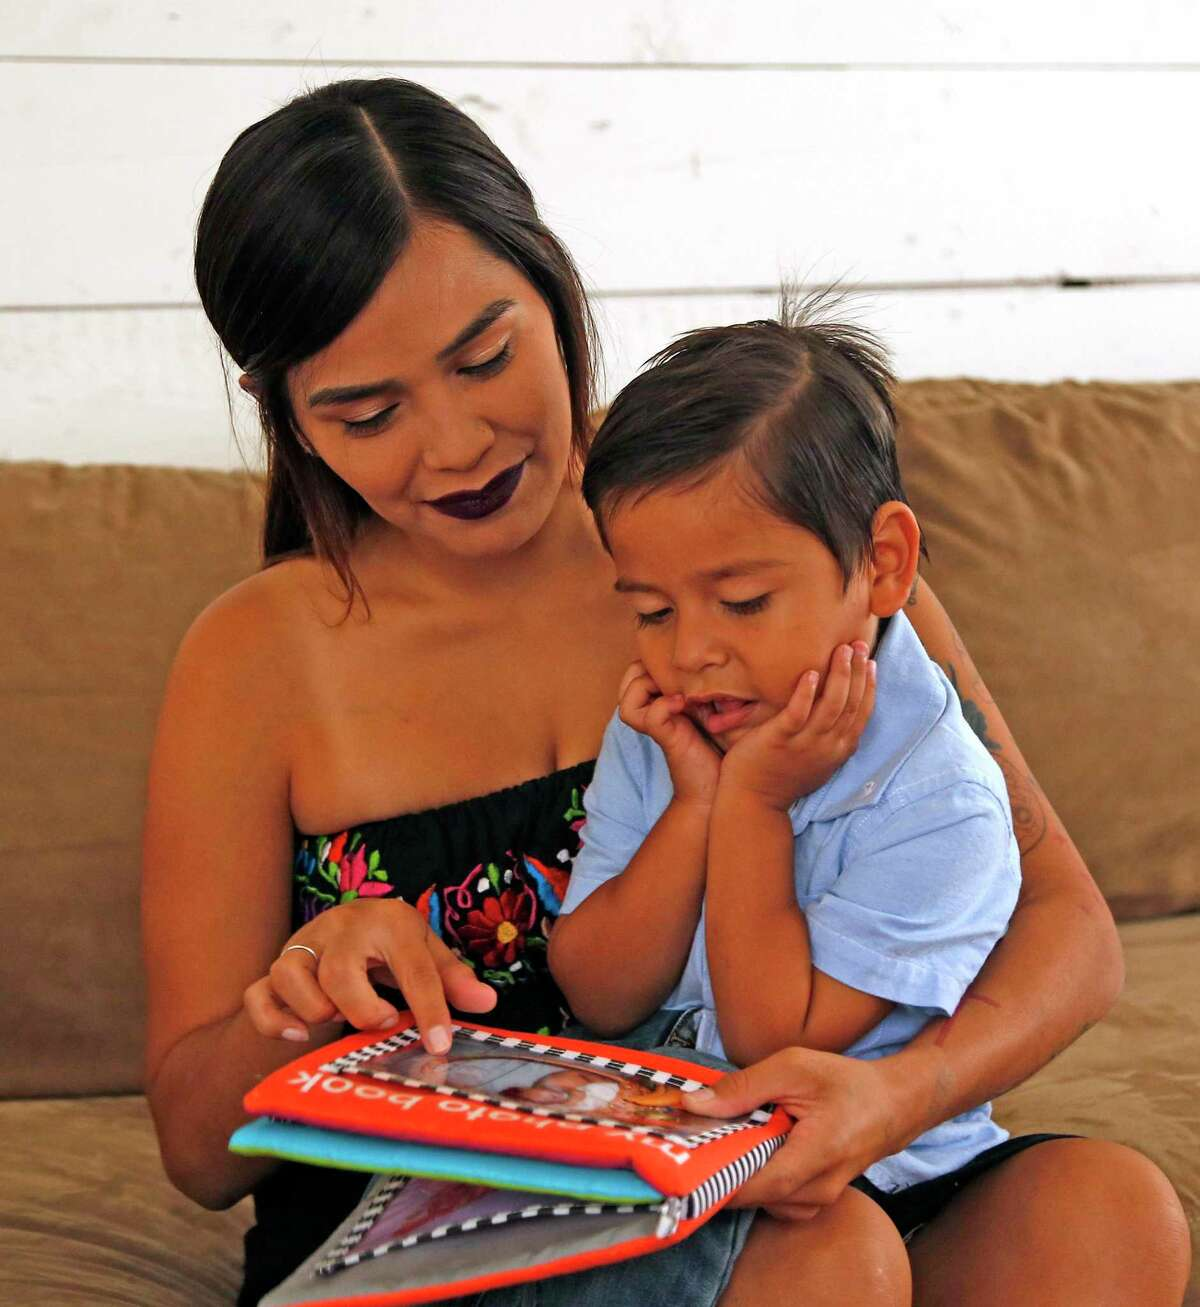 Morrelia Villarreal, 25, reads to her 3-year-old son, Adriel R. Ramirez. She was disappointed to learn she won't qualify for any of the federal funds awarded Texas to assist current and former foster care youths during the pandemic.